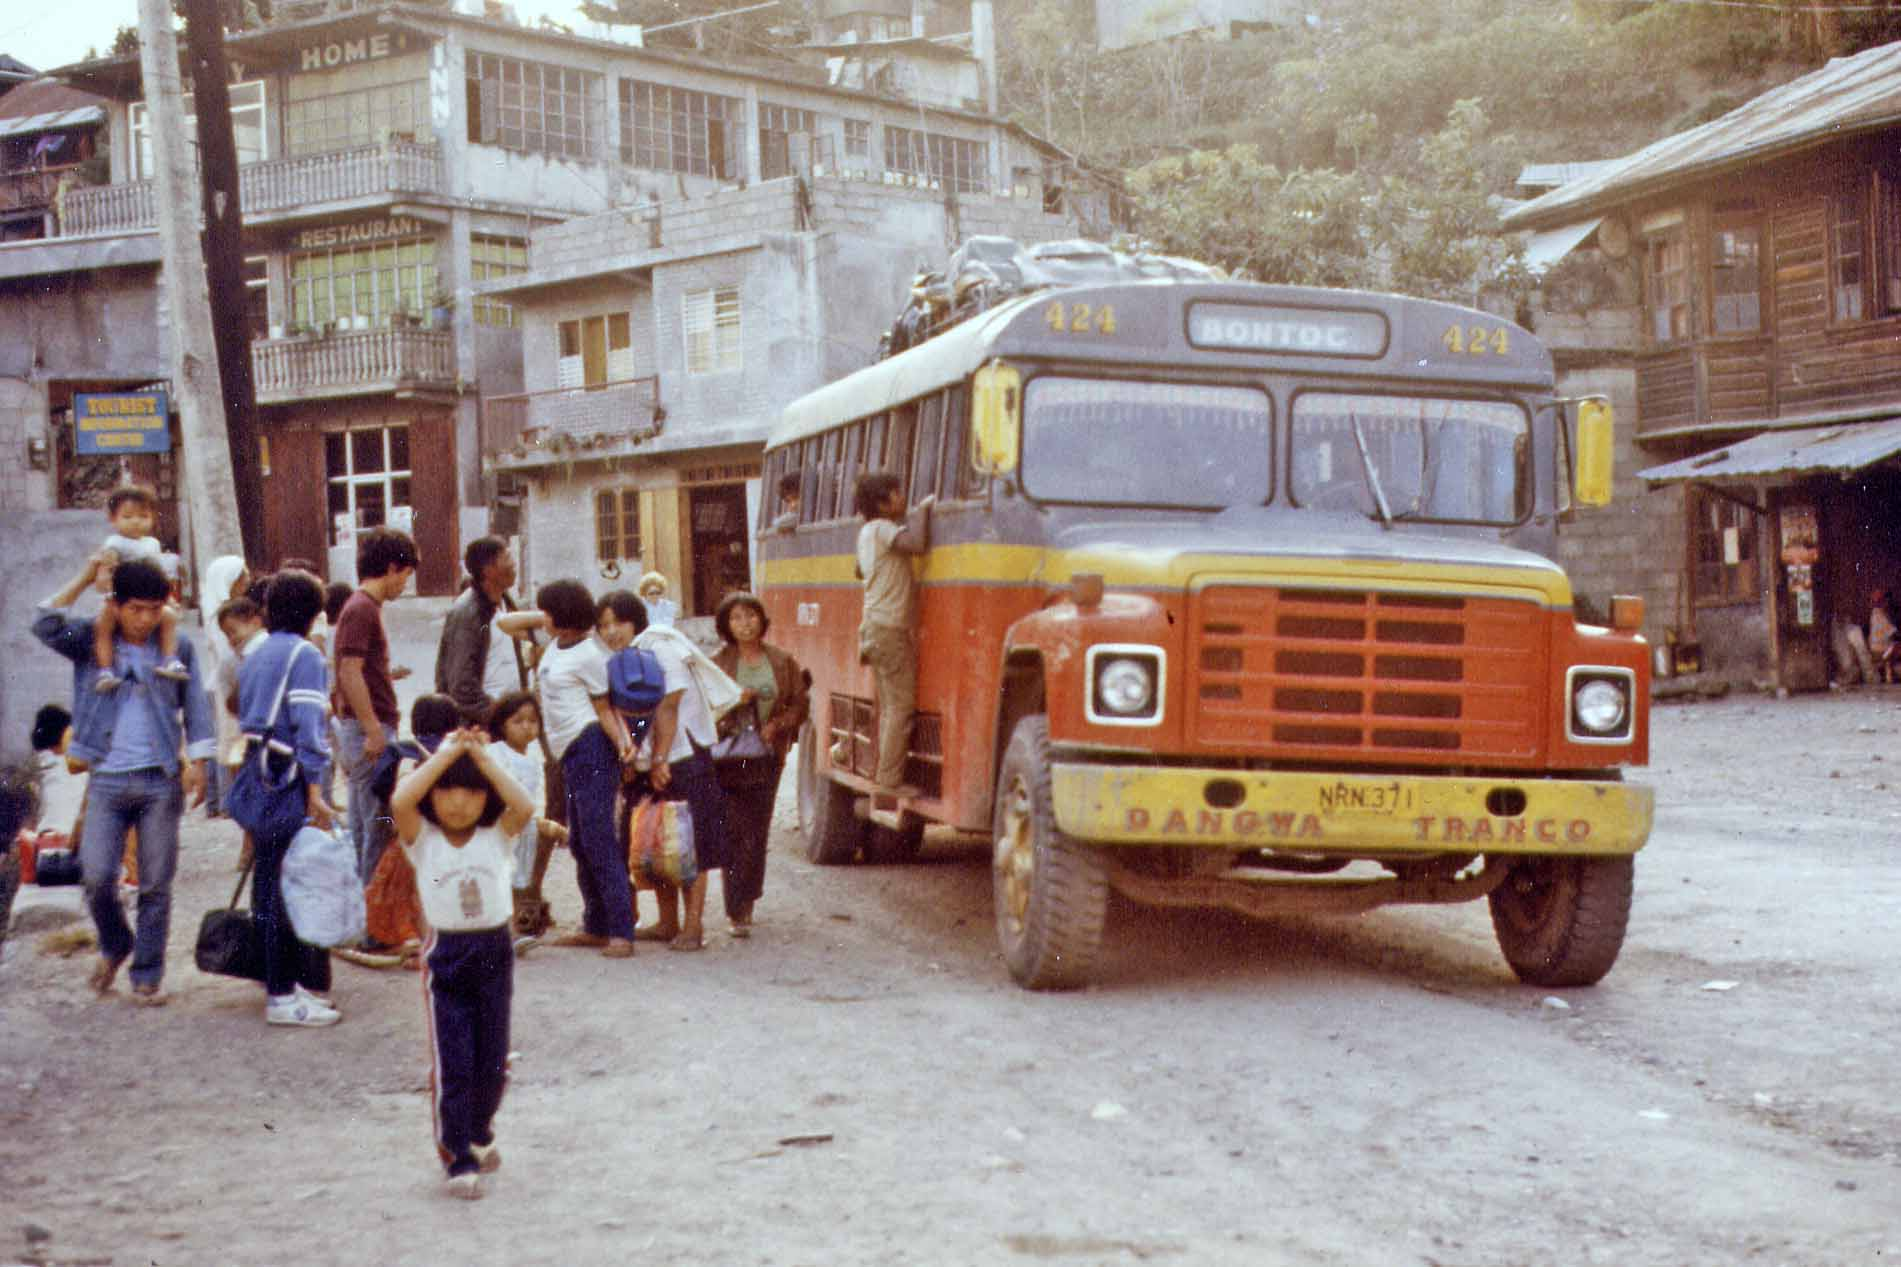 Bontoc - arrival with bus